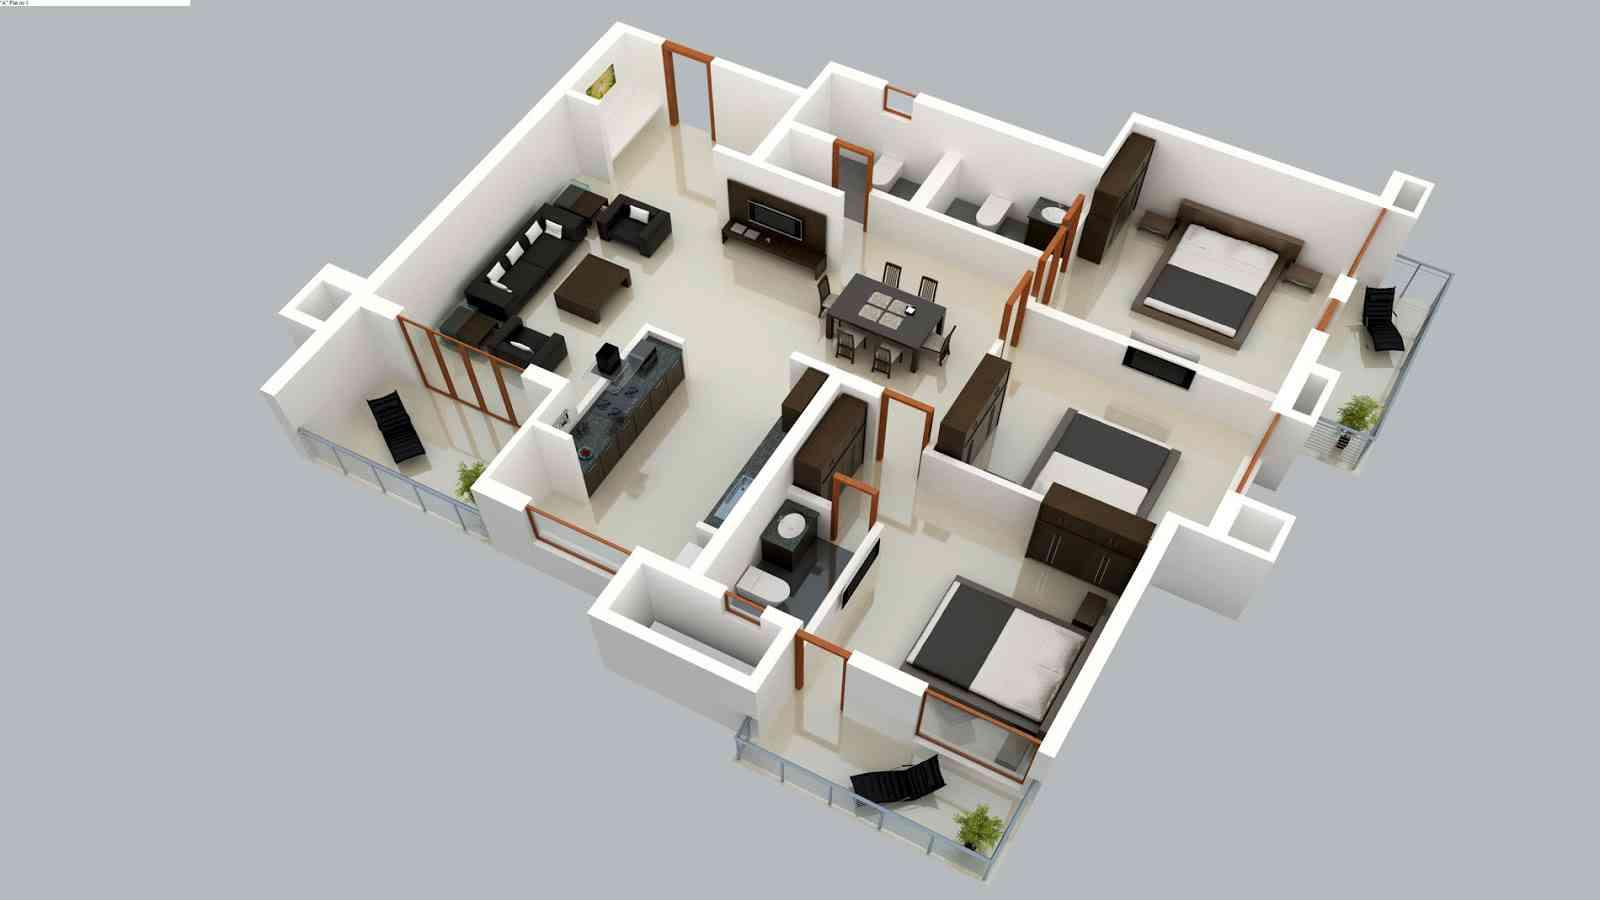 3D Home Floor Plan Ideas 1.0 APK Download - Android Lifestyle Apps